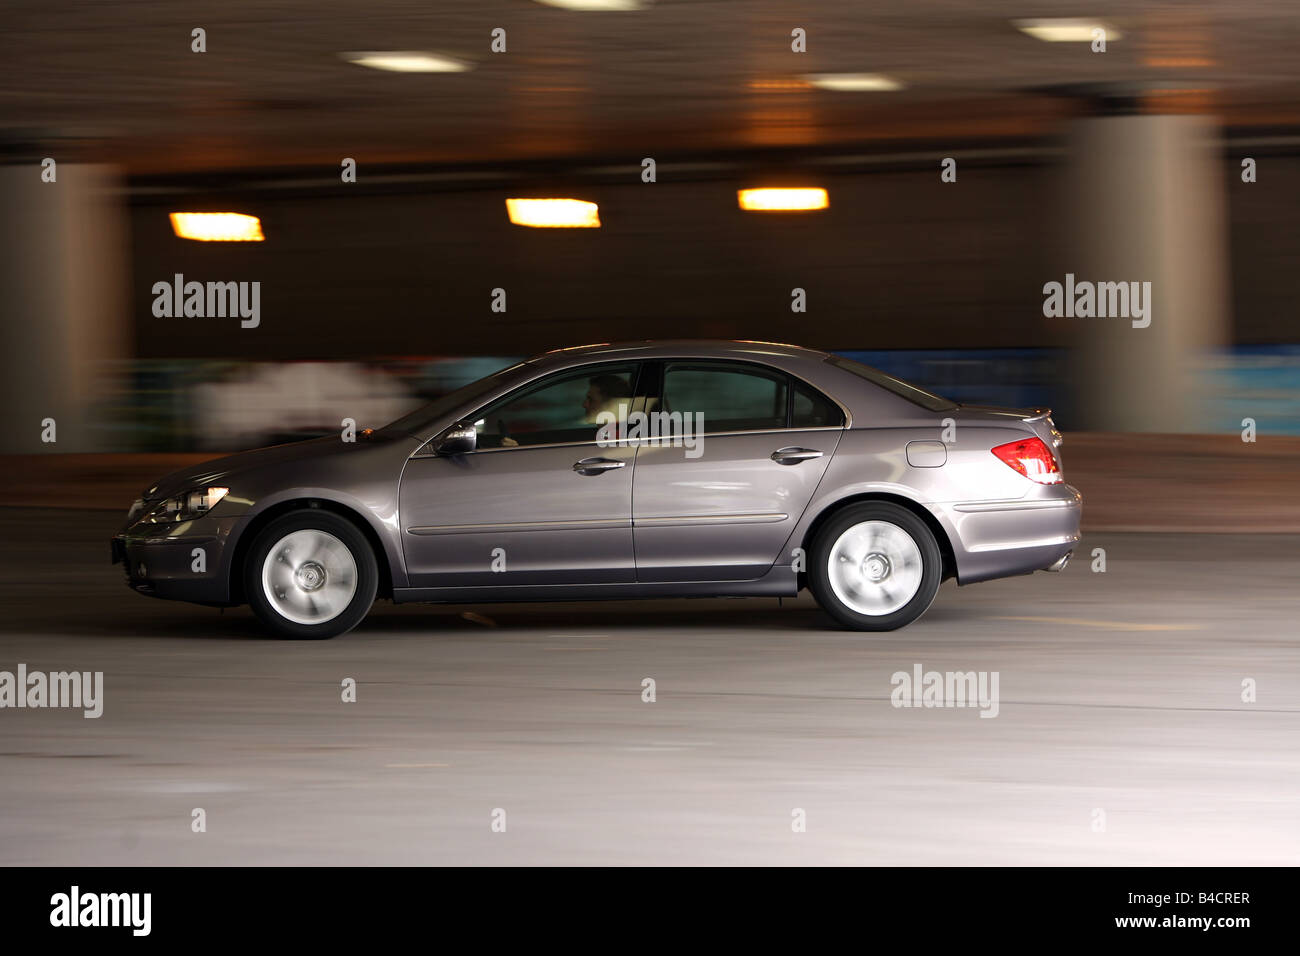 Honda Legend 3.5 SH-AWD, model year 2006-, anthracite, driving, side view, City - Stock Image